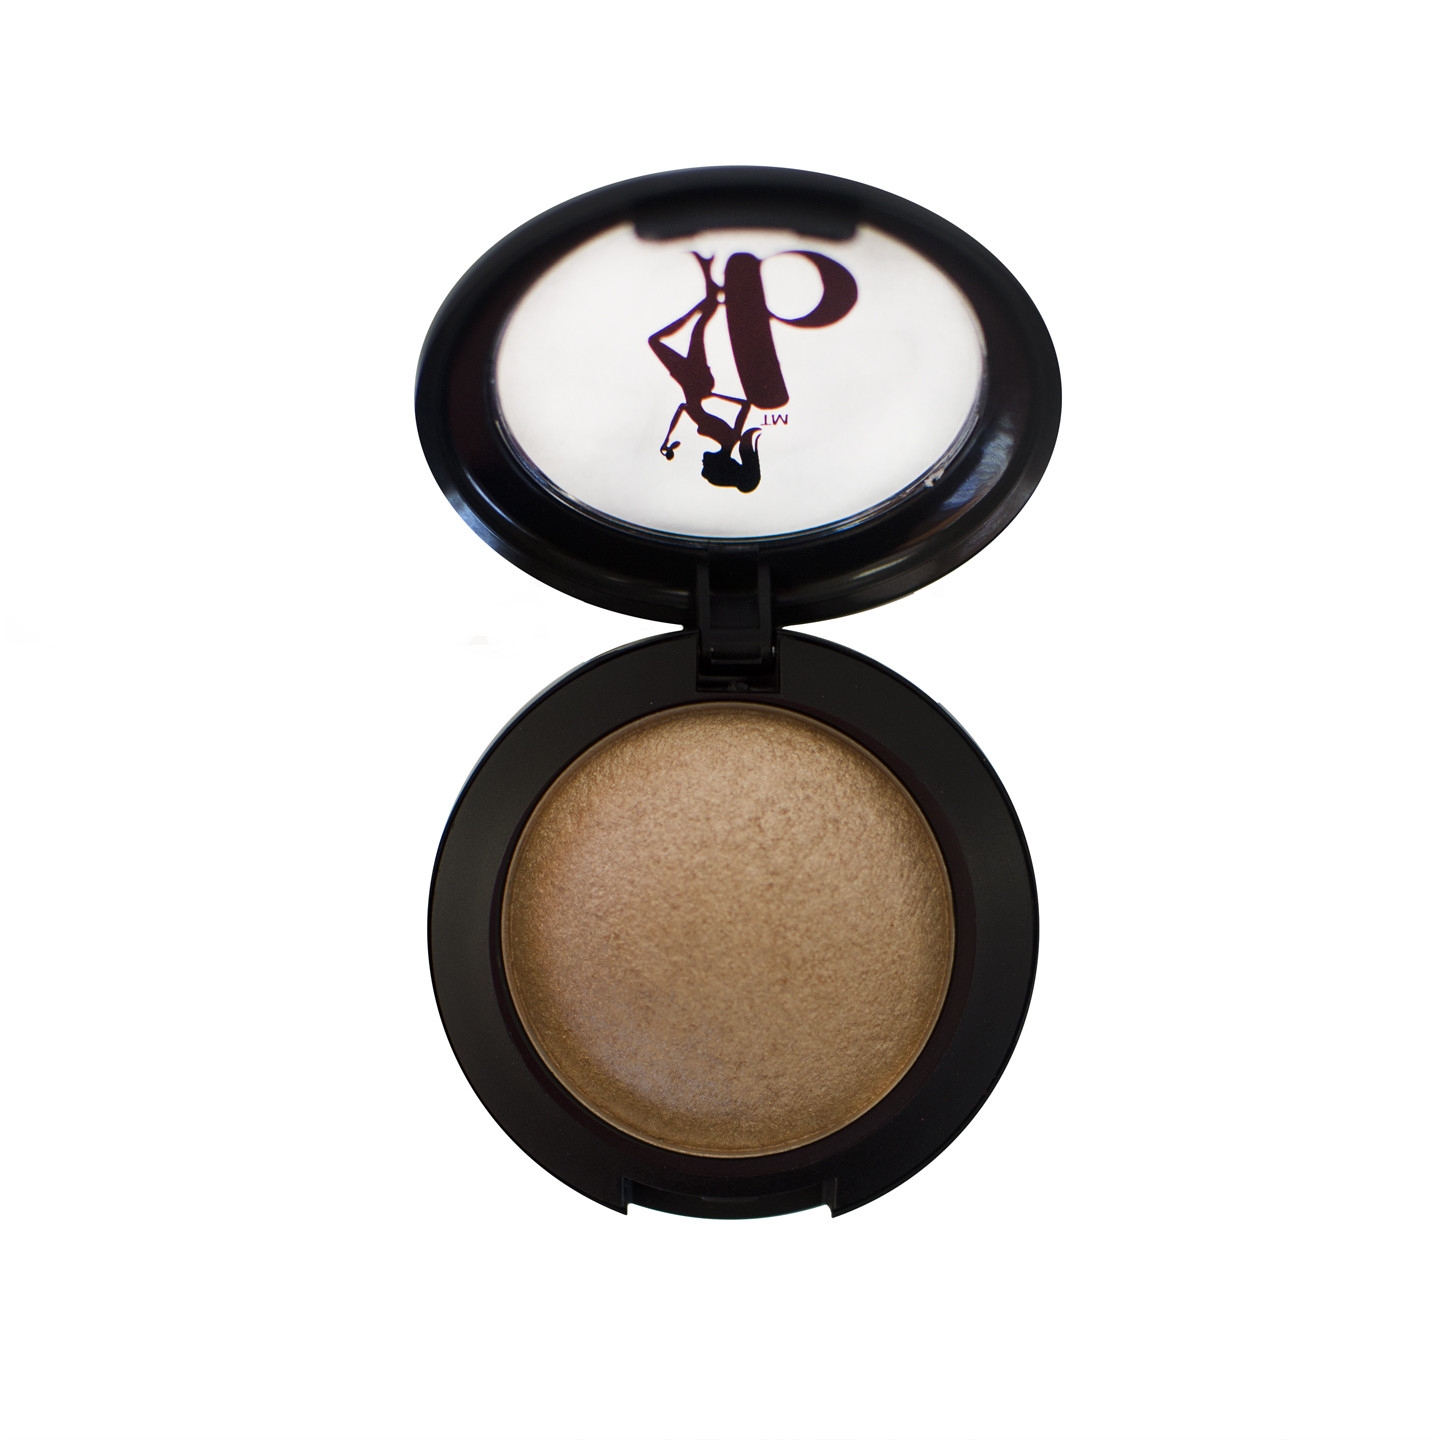 Baked Bronzer by Be A Bombshell